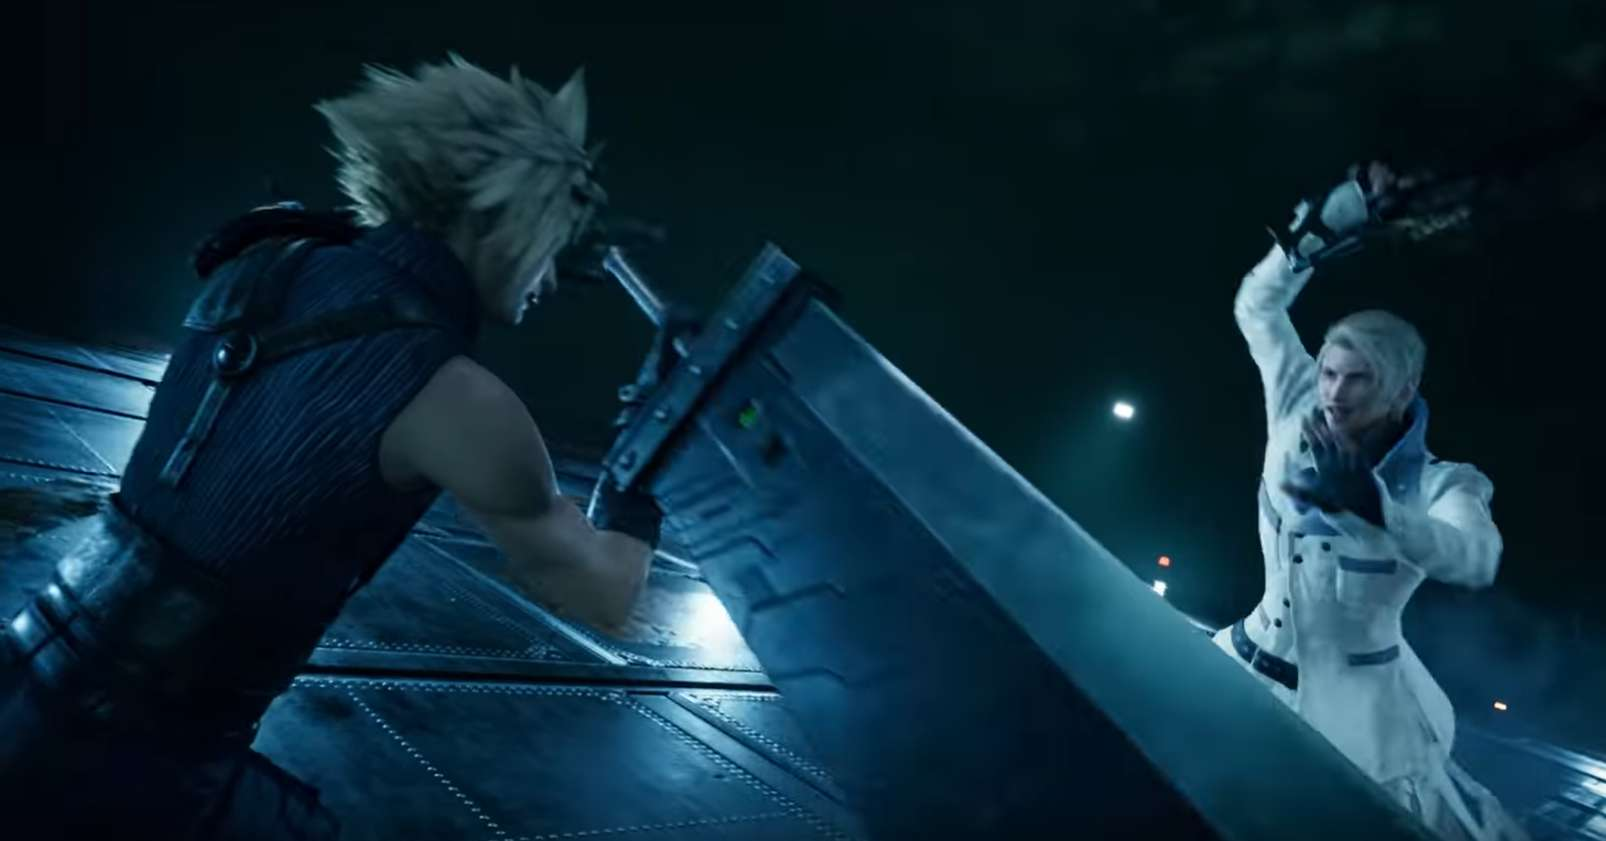 An In-Depth Review Of The Final Fantasy 7 Remake Final Trailer – The Good And The Bad